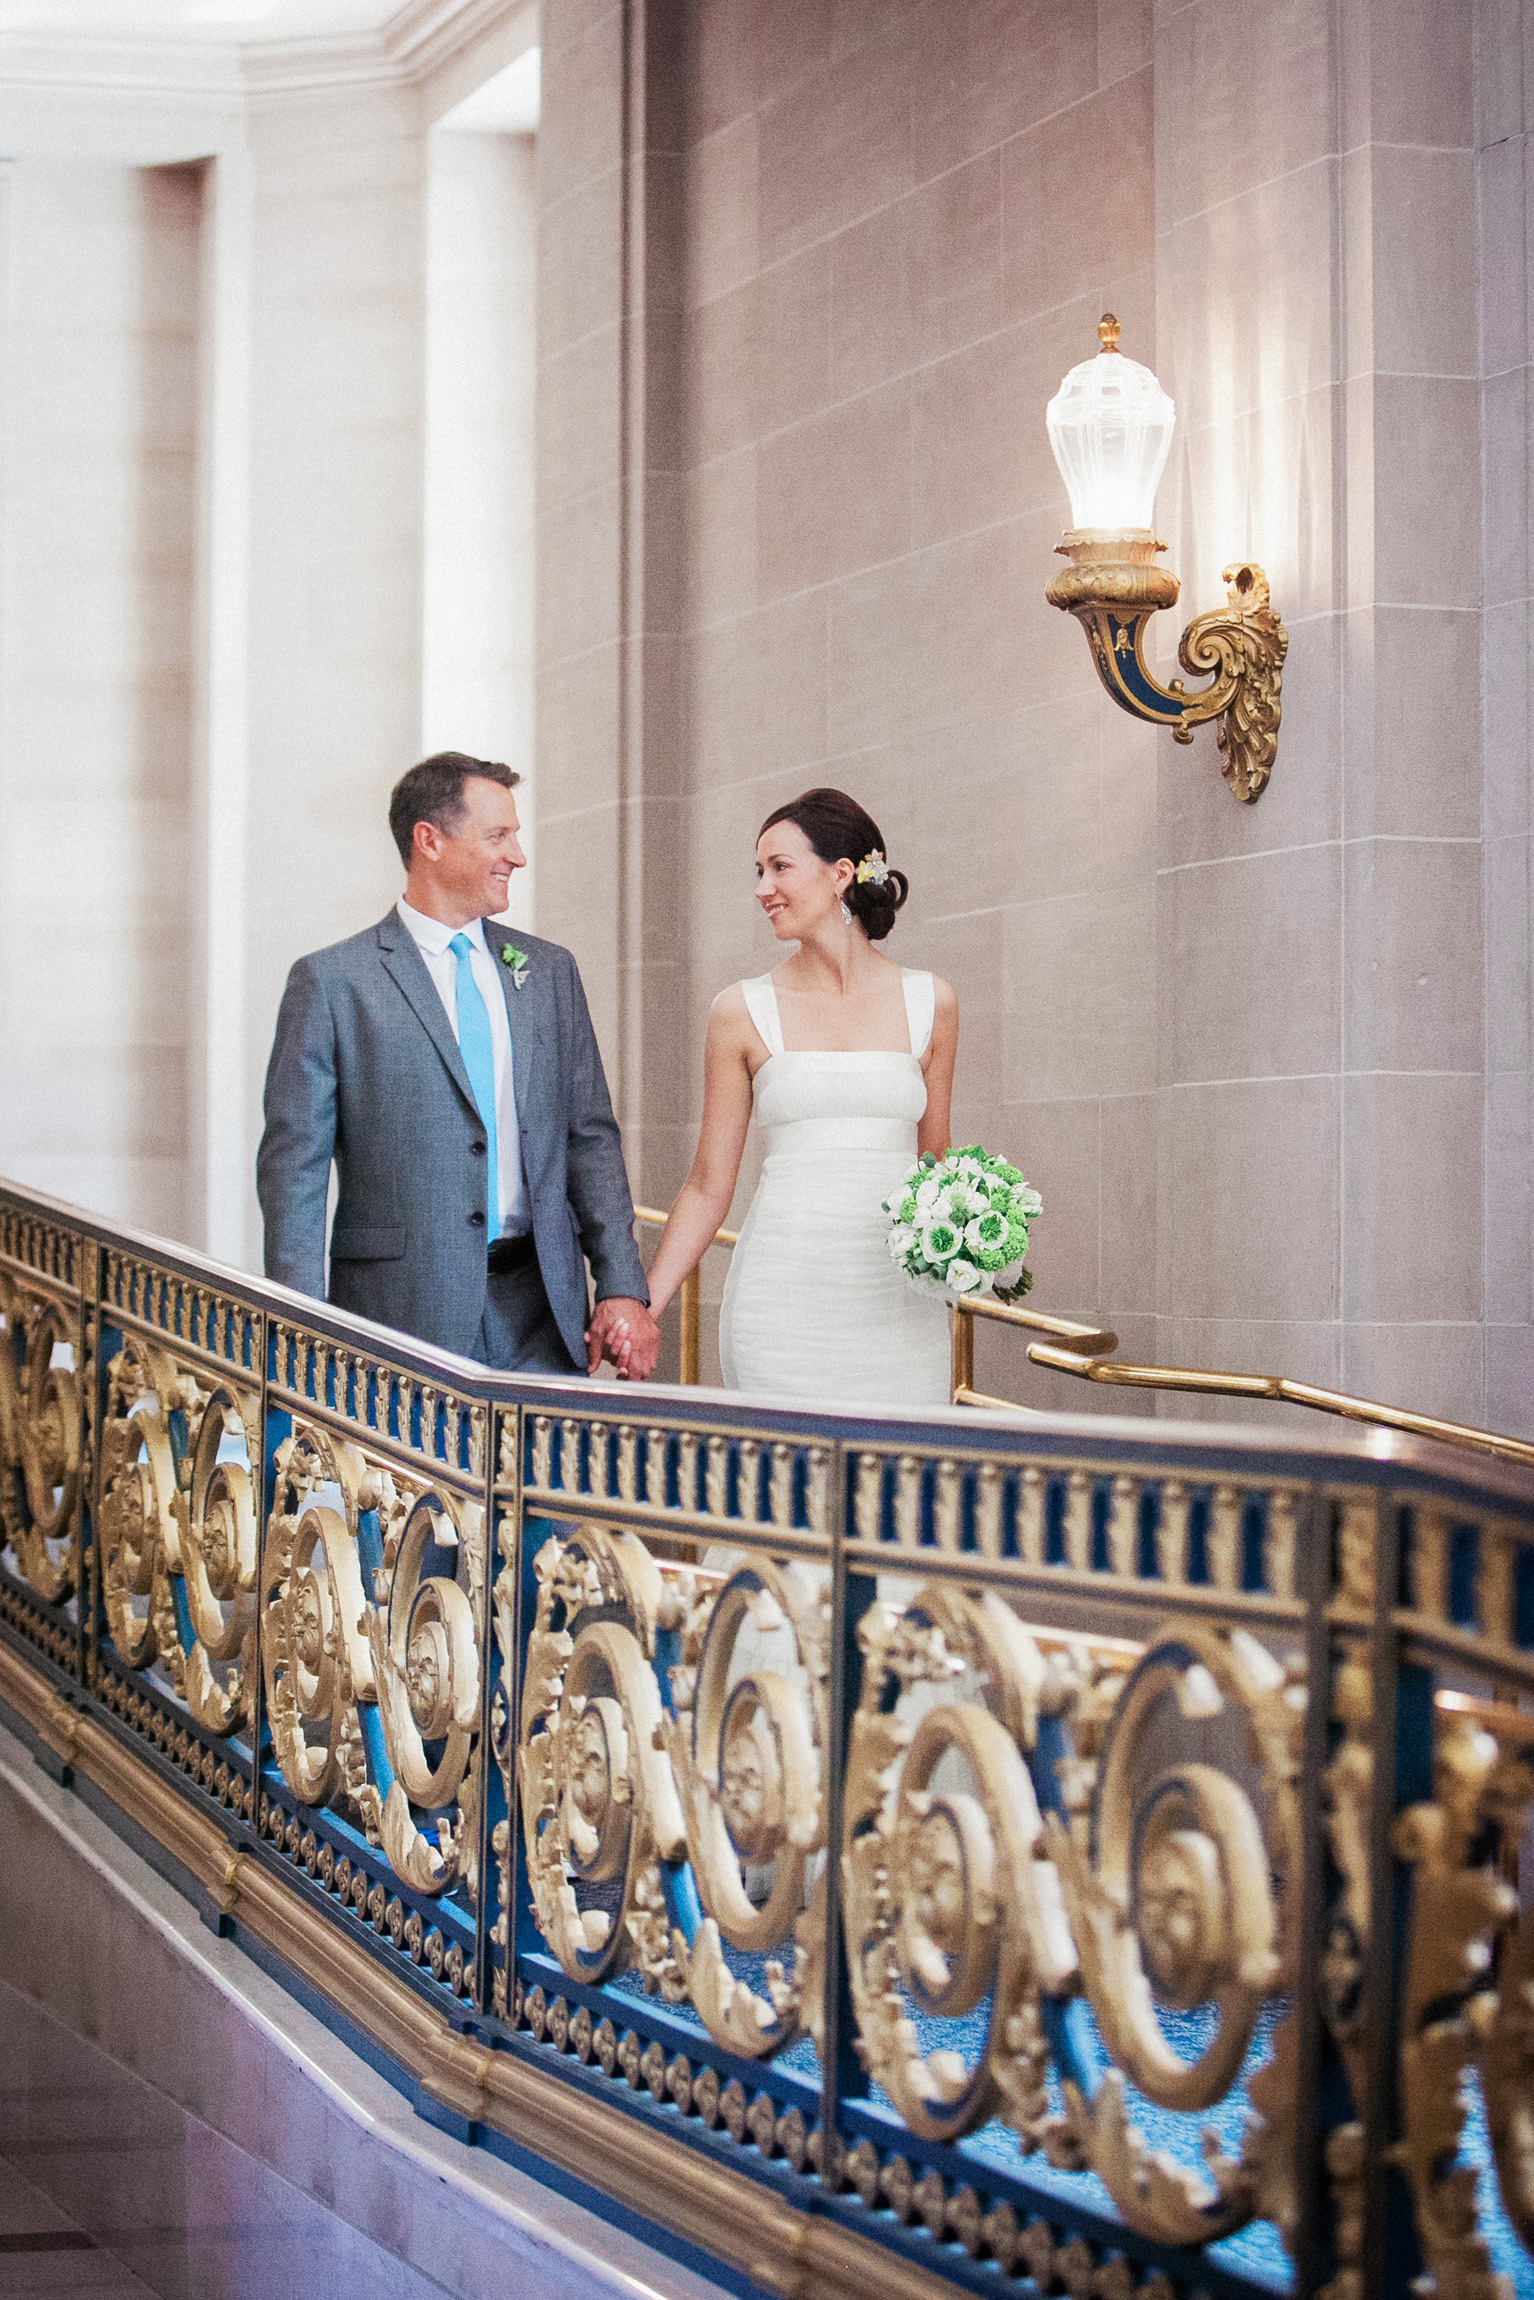 005_janaeshieldsphotography_sanfrancisco_cityhall_weddings.jpg